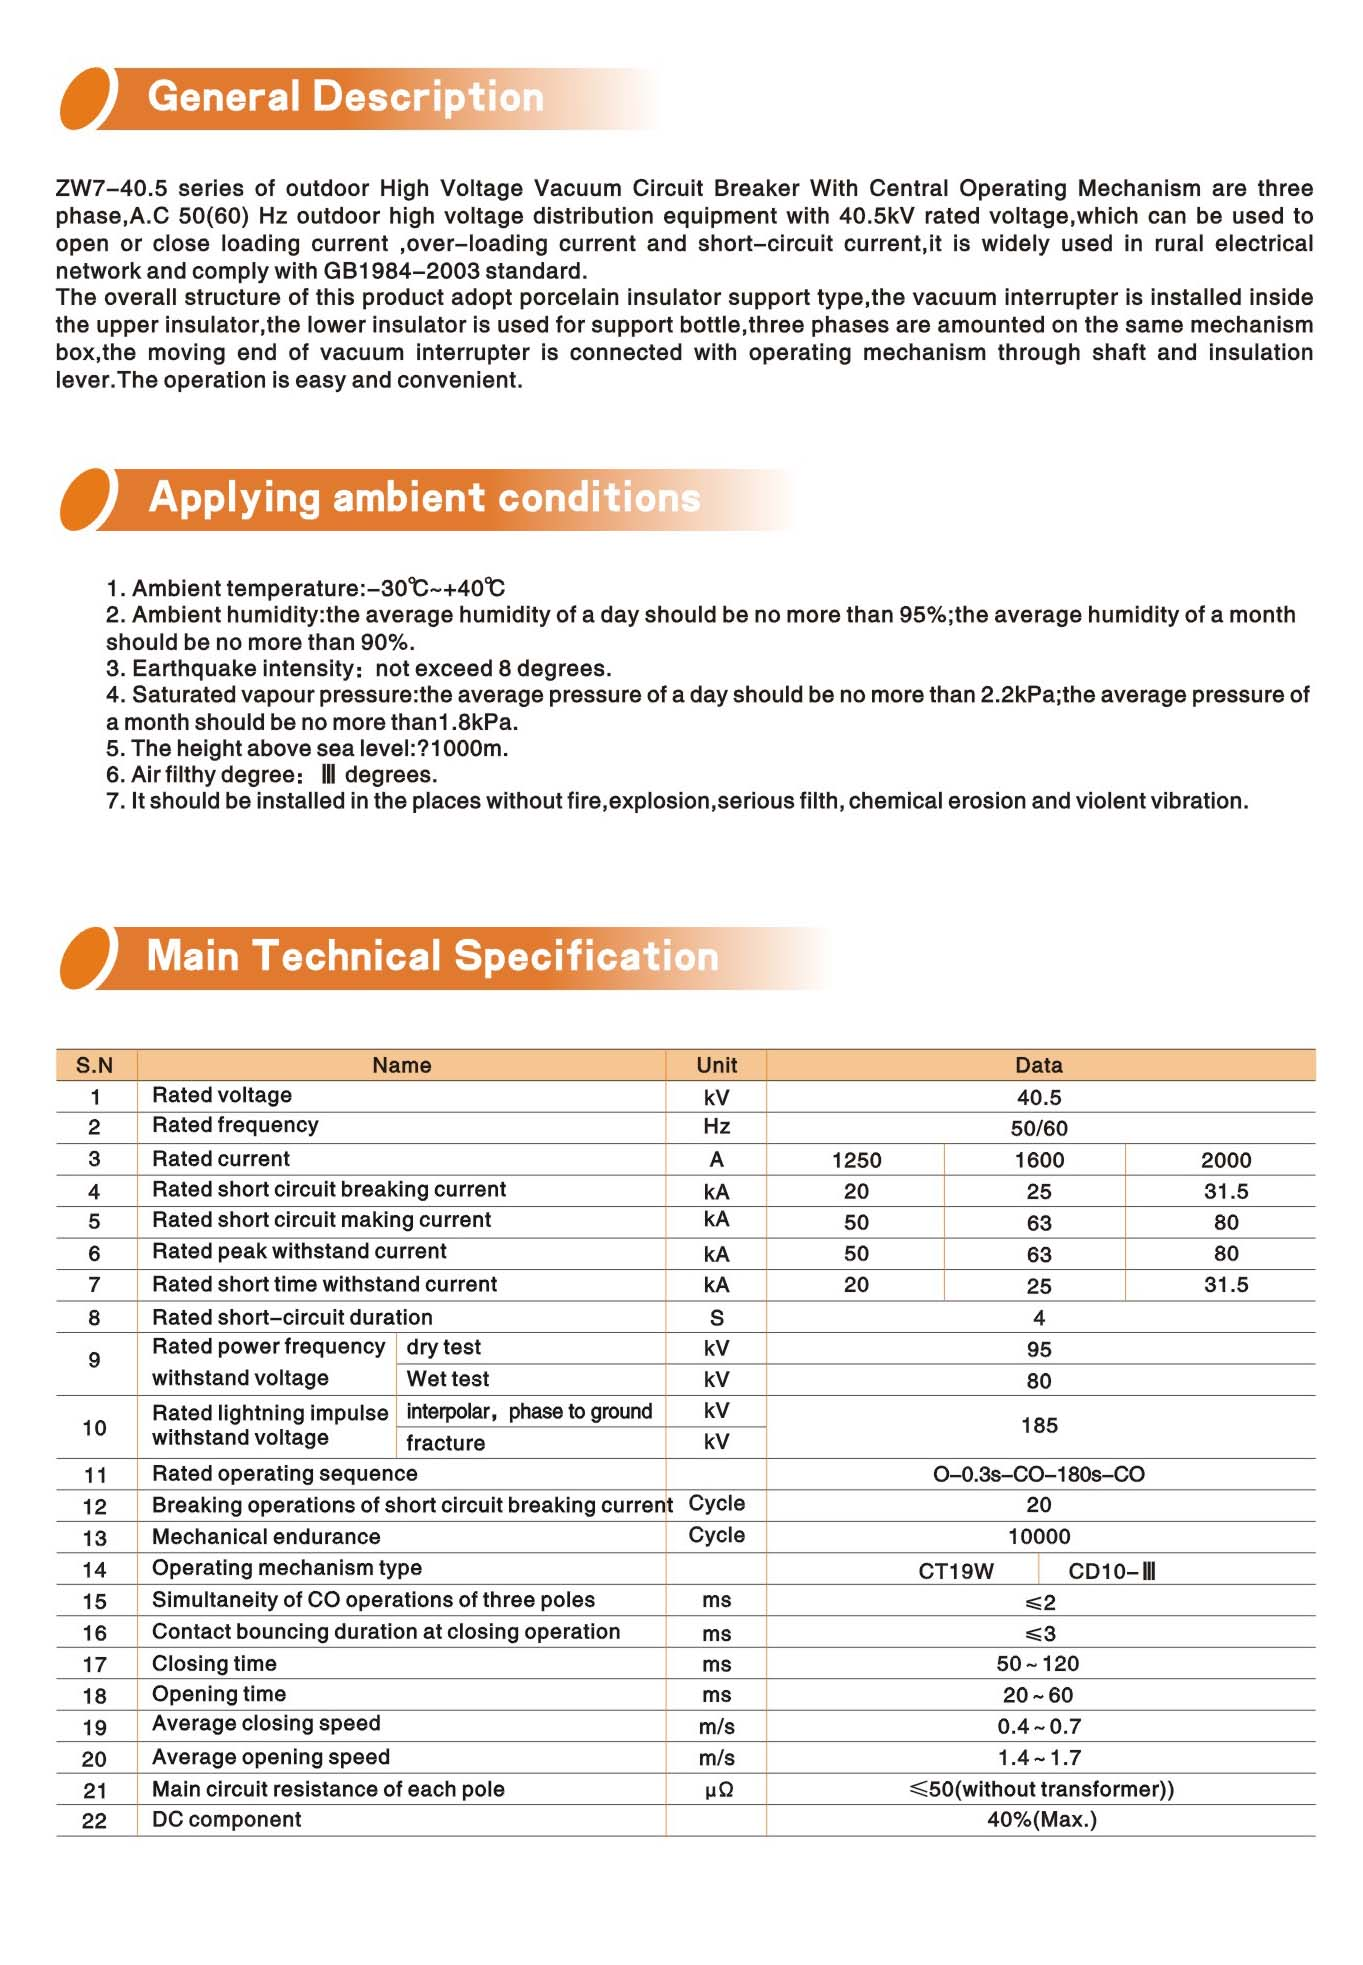 ZW7-40.5 Type VCB Technical Specification